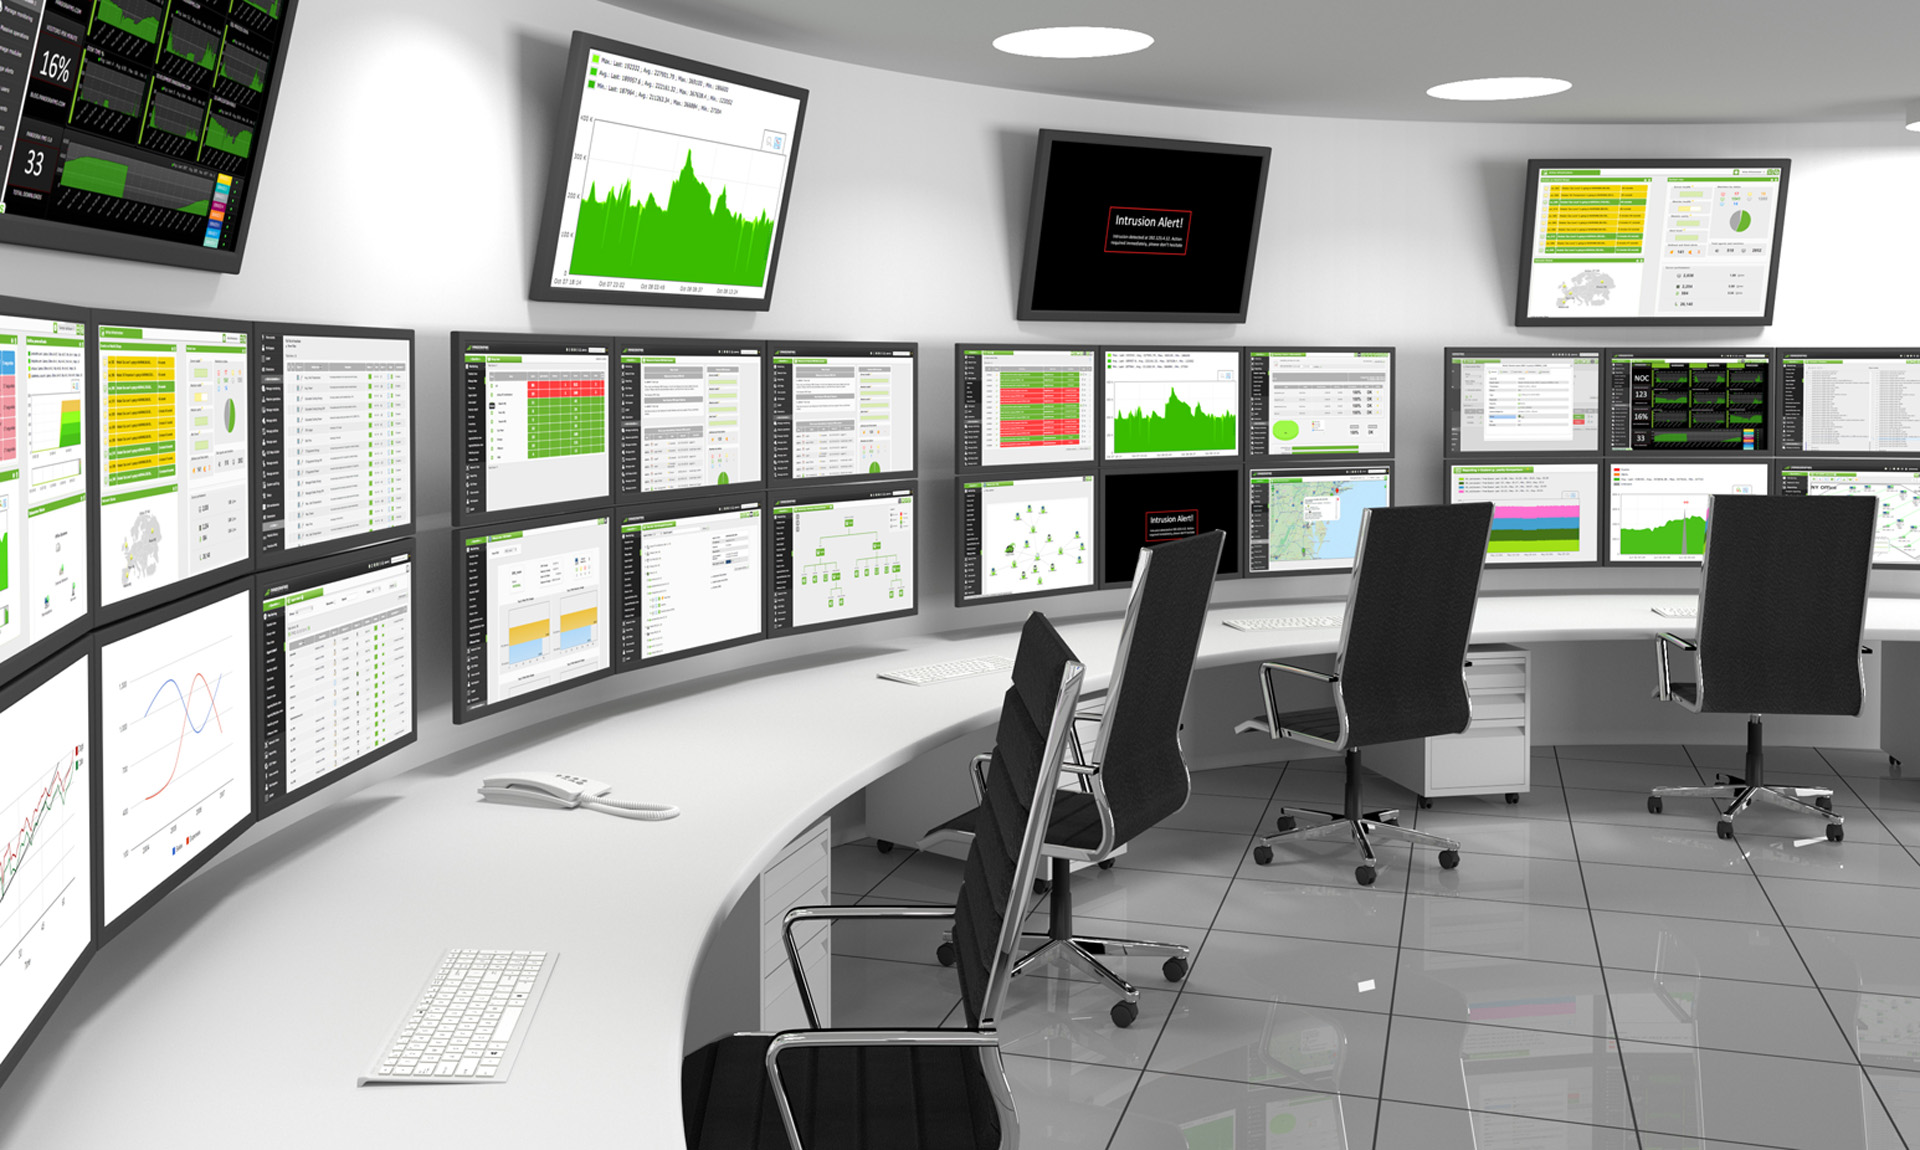 Rendered image of a power plant control room